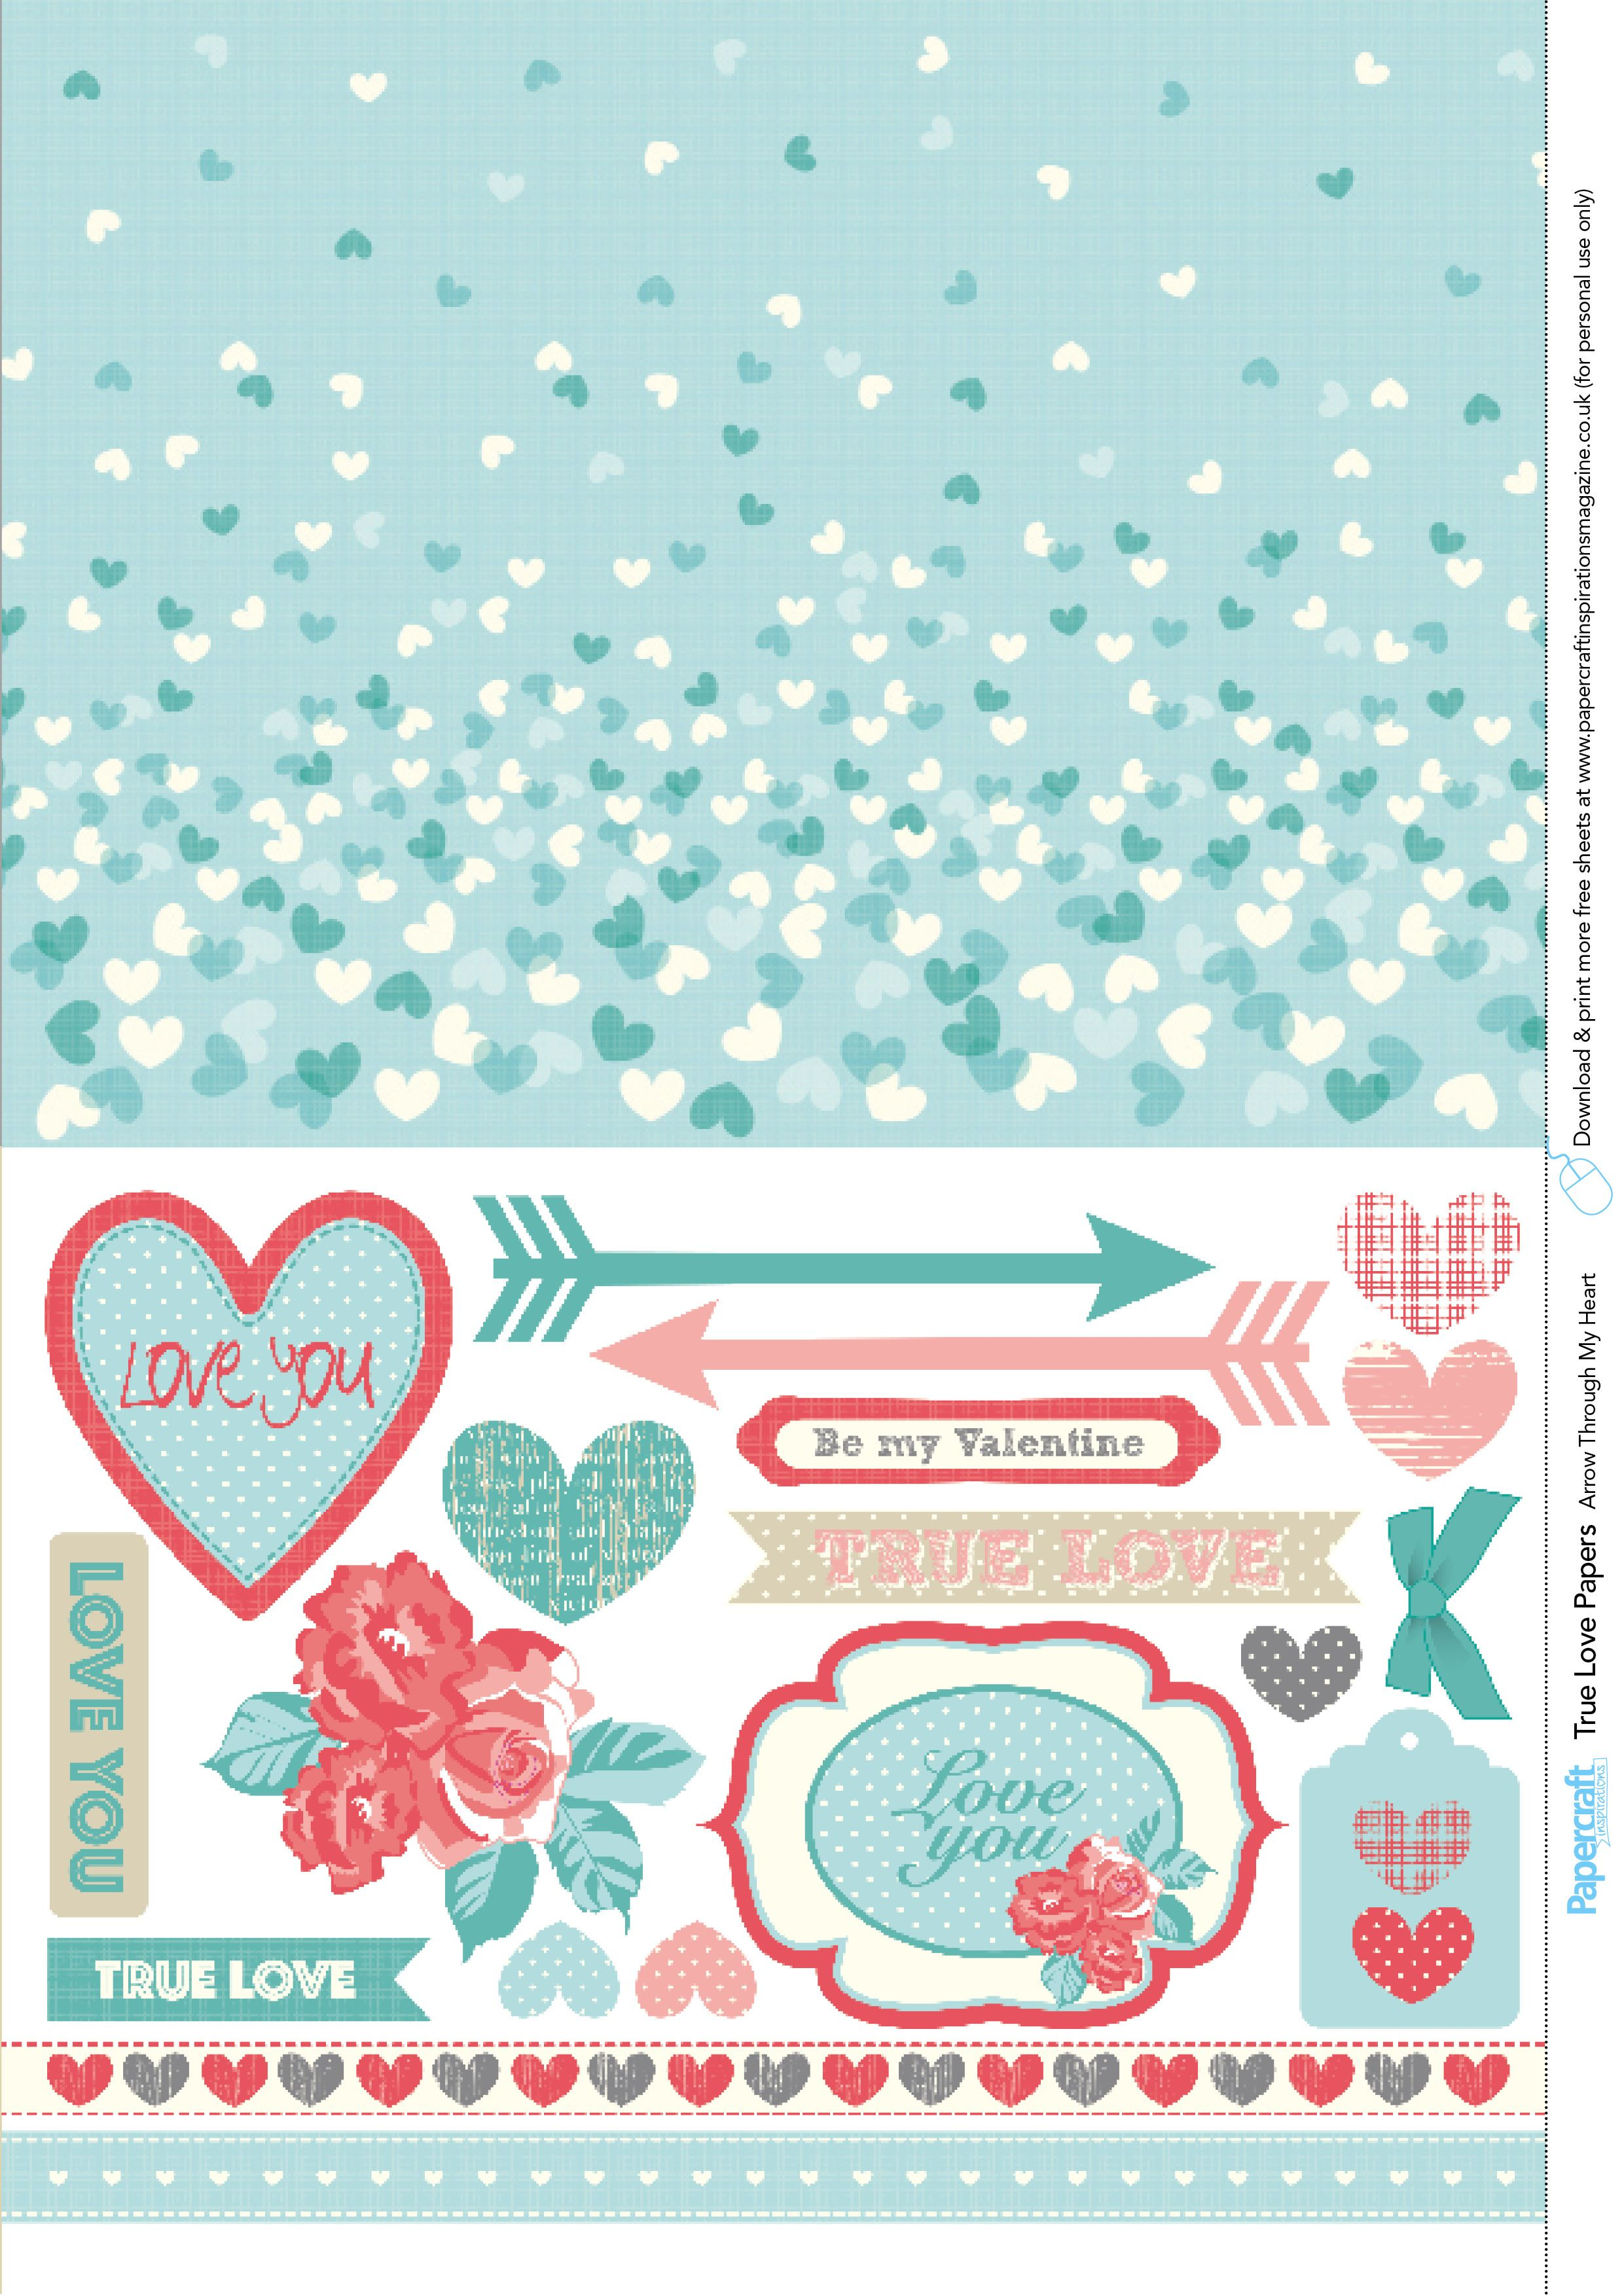 Get crafty with these romantic free printable papers and sentiments from Papercraft Inspirations magazine.